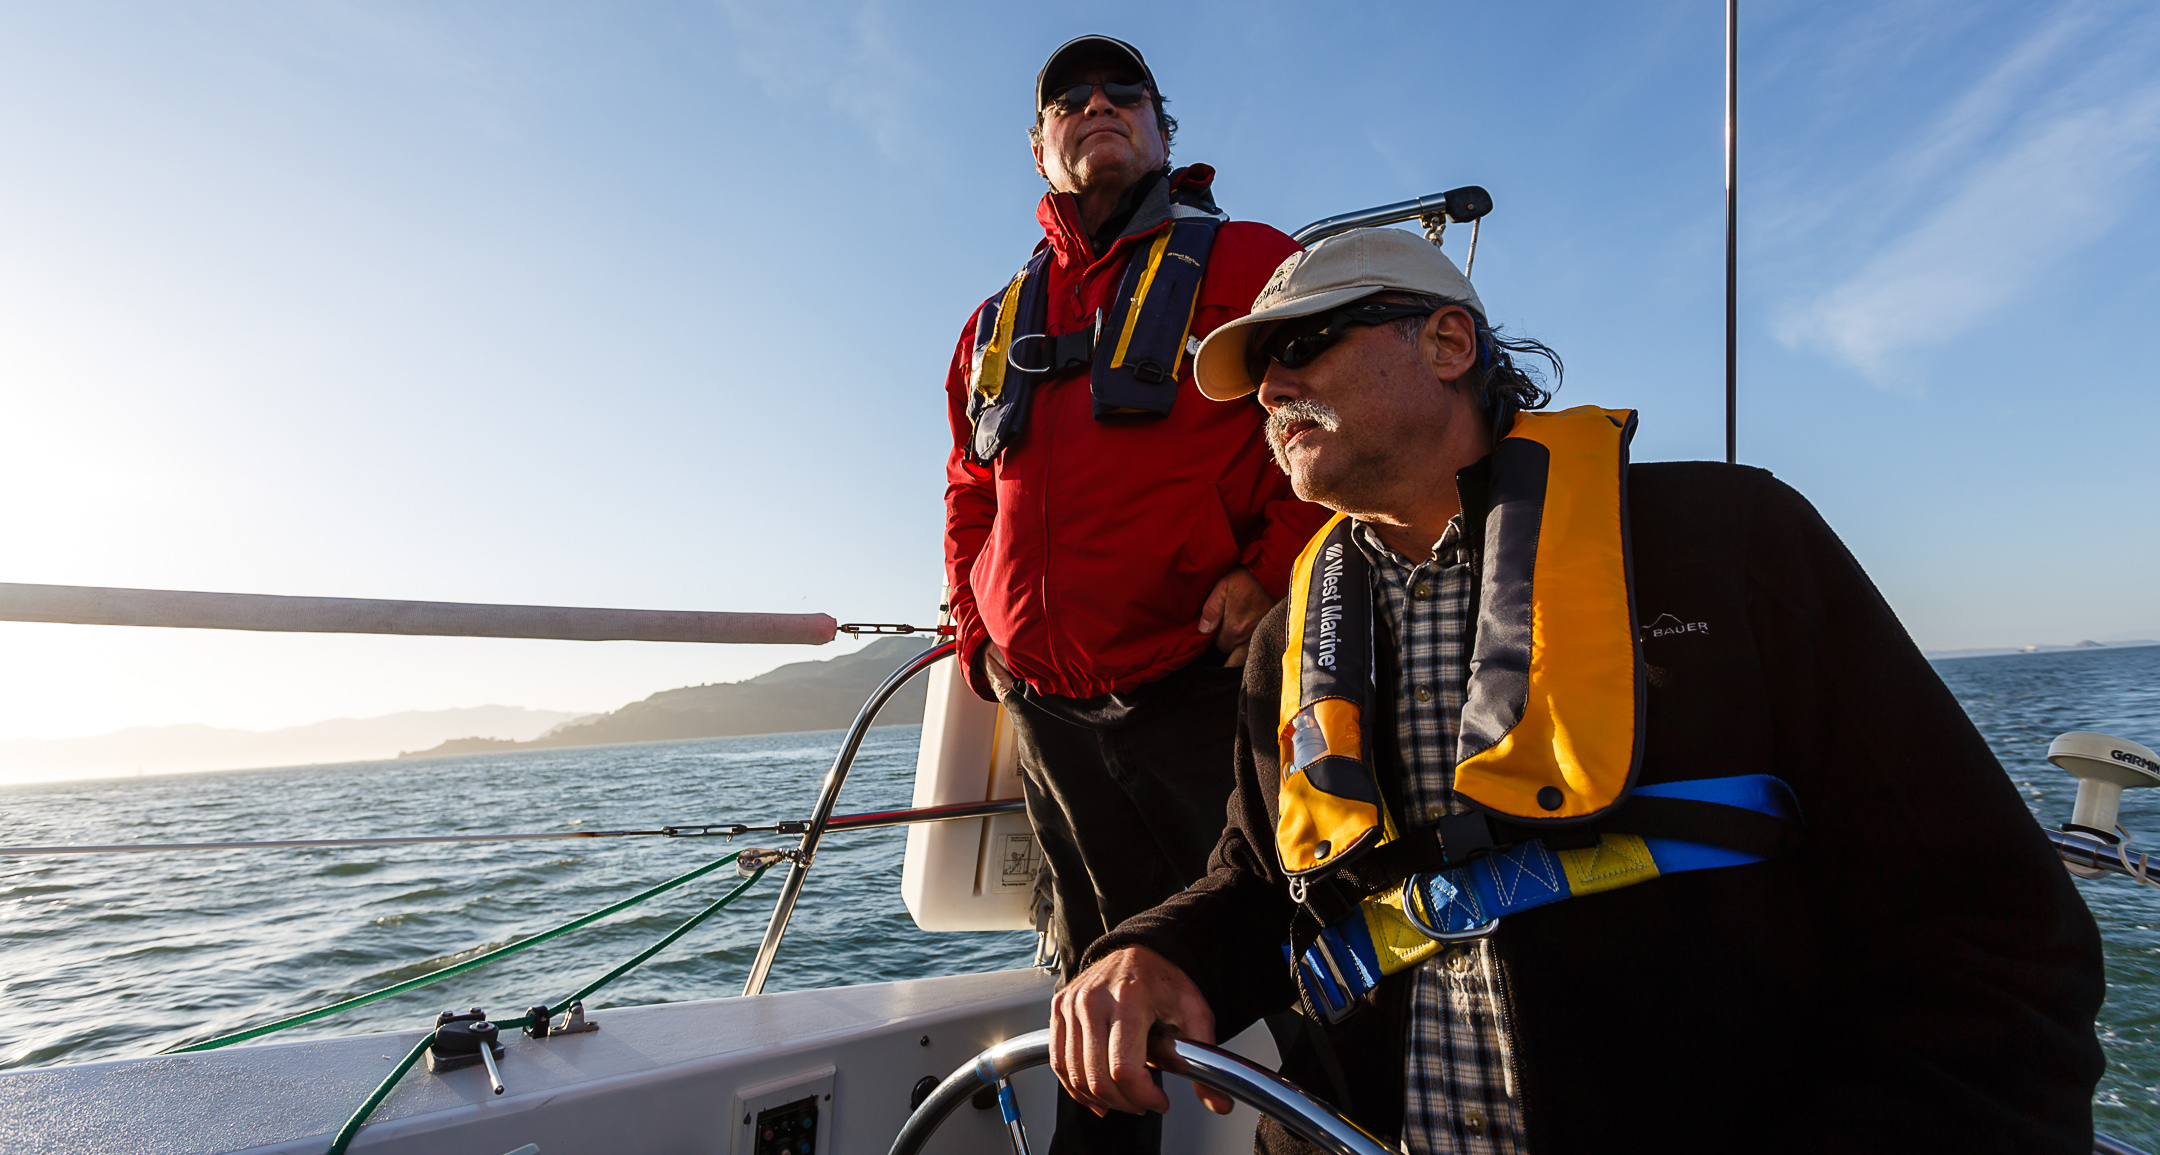 Modern Sailing Member Chuck takes the helm during an ASA 104 Bareboat Cruising Course with Modern Sailing School & Club and Instructor JT Meade